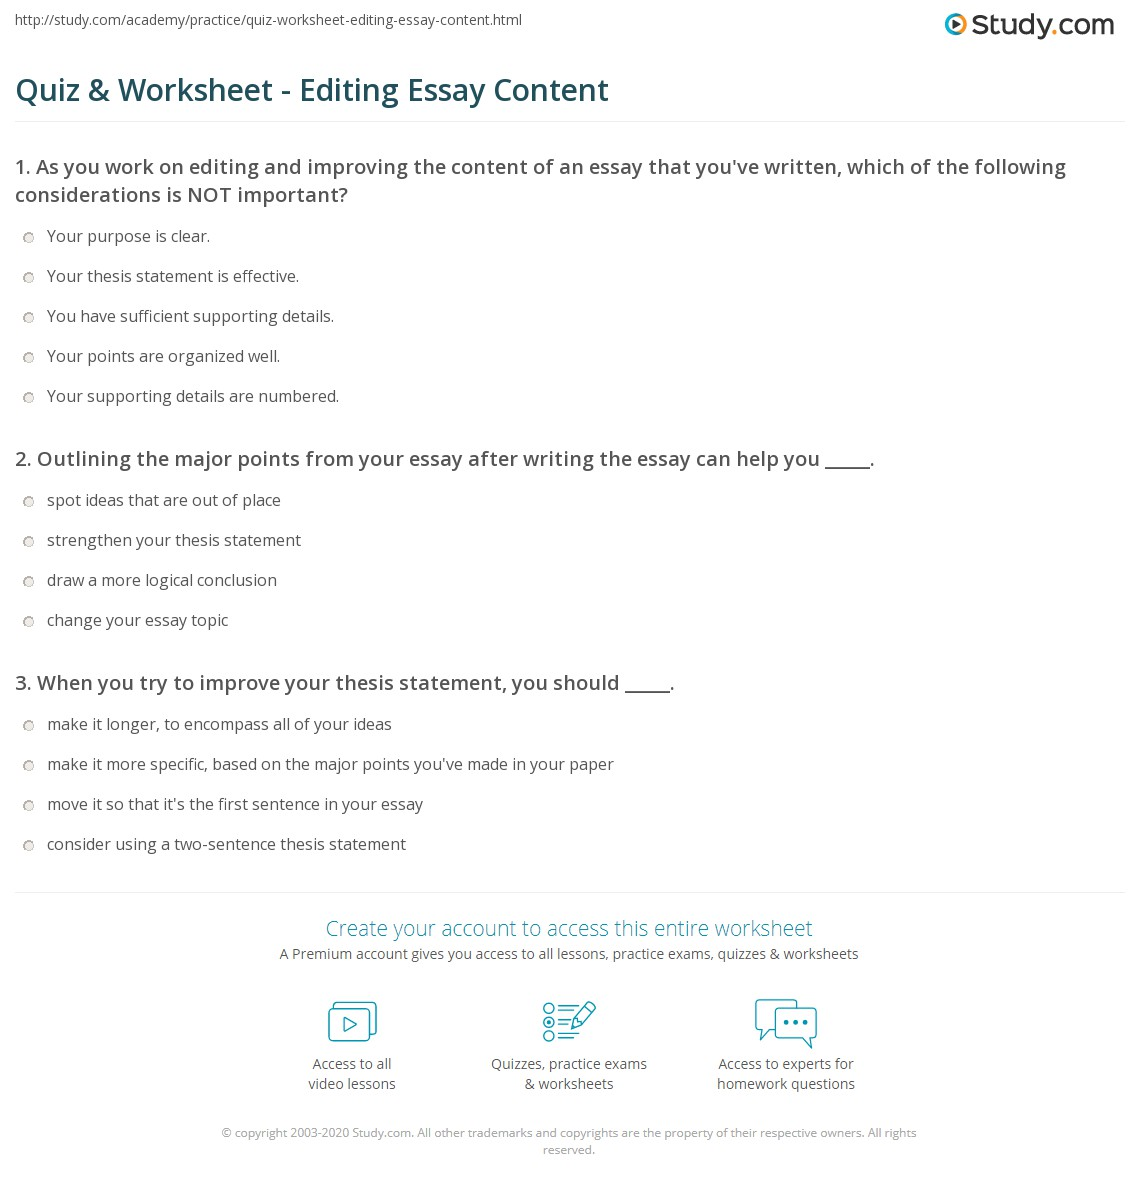 quiz worksheet editing essay content com print how to edit and improve essay content worksheet